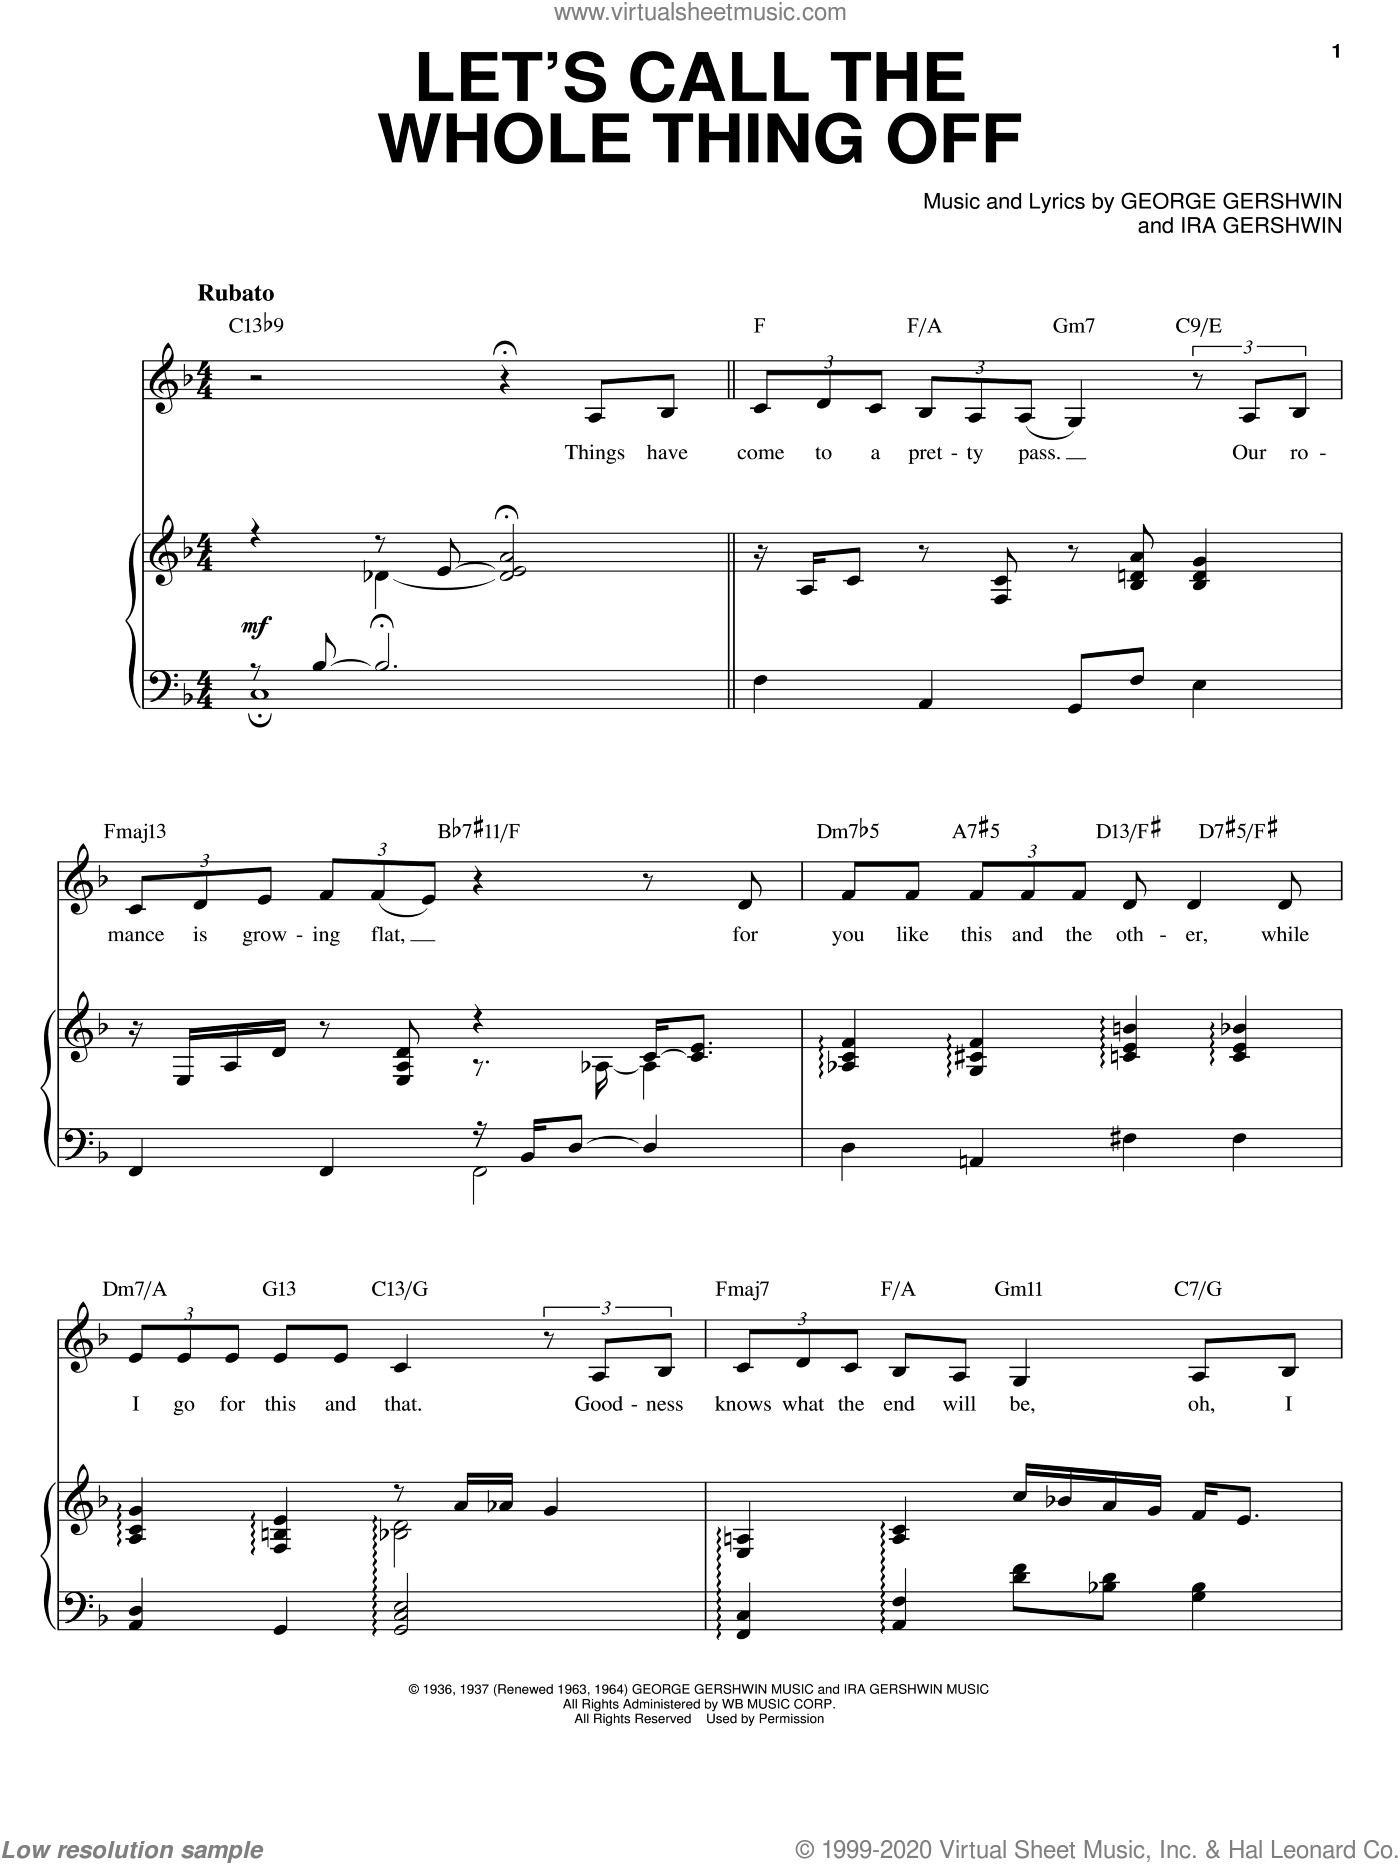 Let's Call The Whole Thing Off sheet music for voice and piano by Ella Fitzgerald, George Gershwin and Ira Gershwin, intermediate skill level